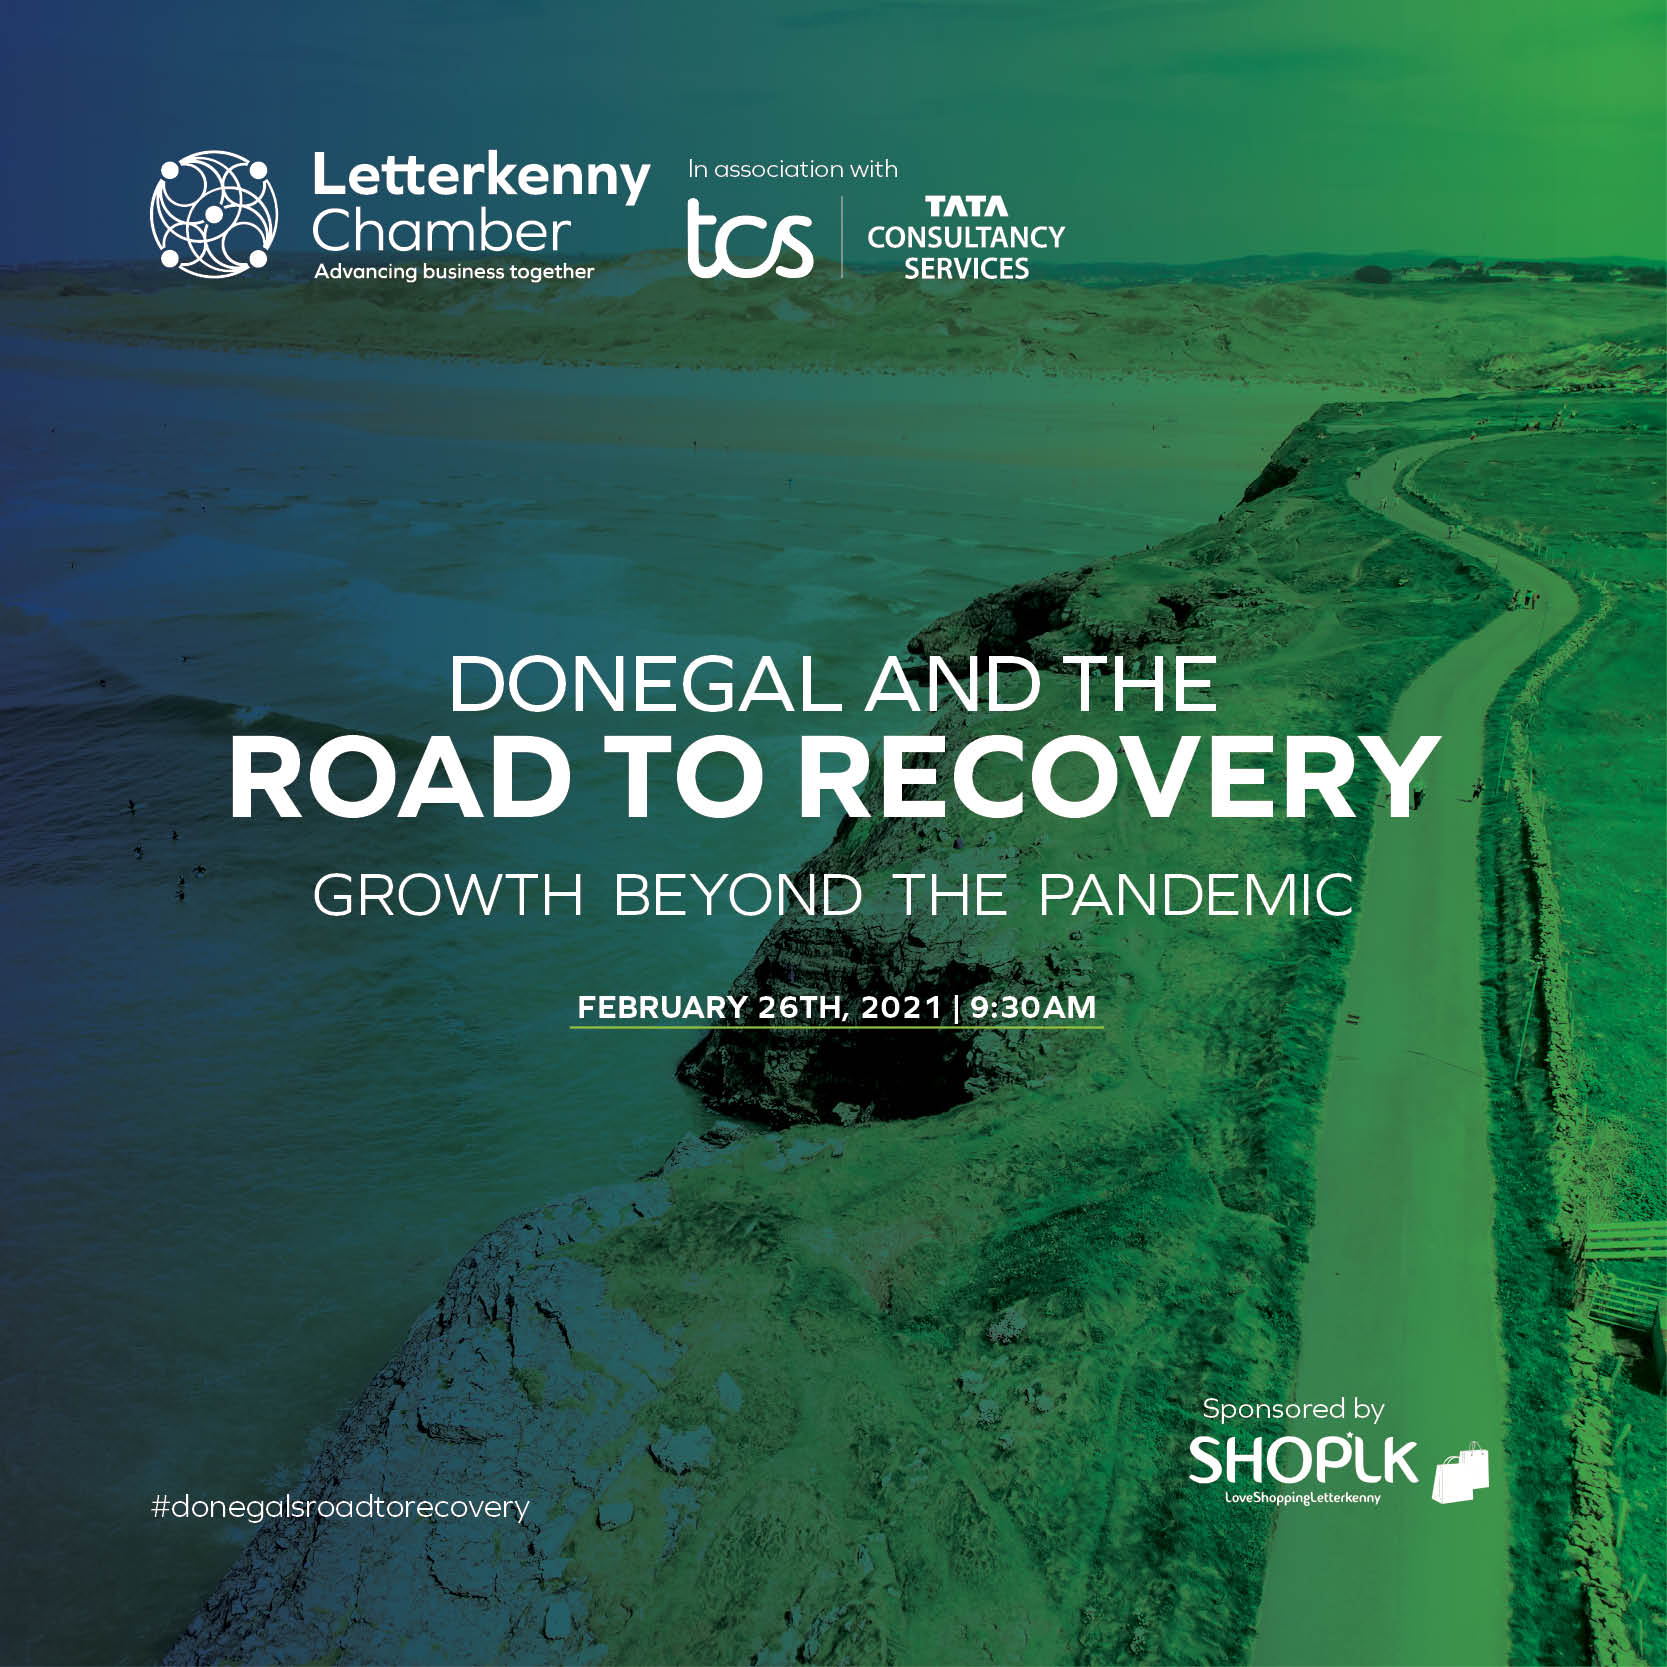 Donegal and the Road to Recovery